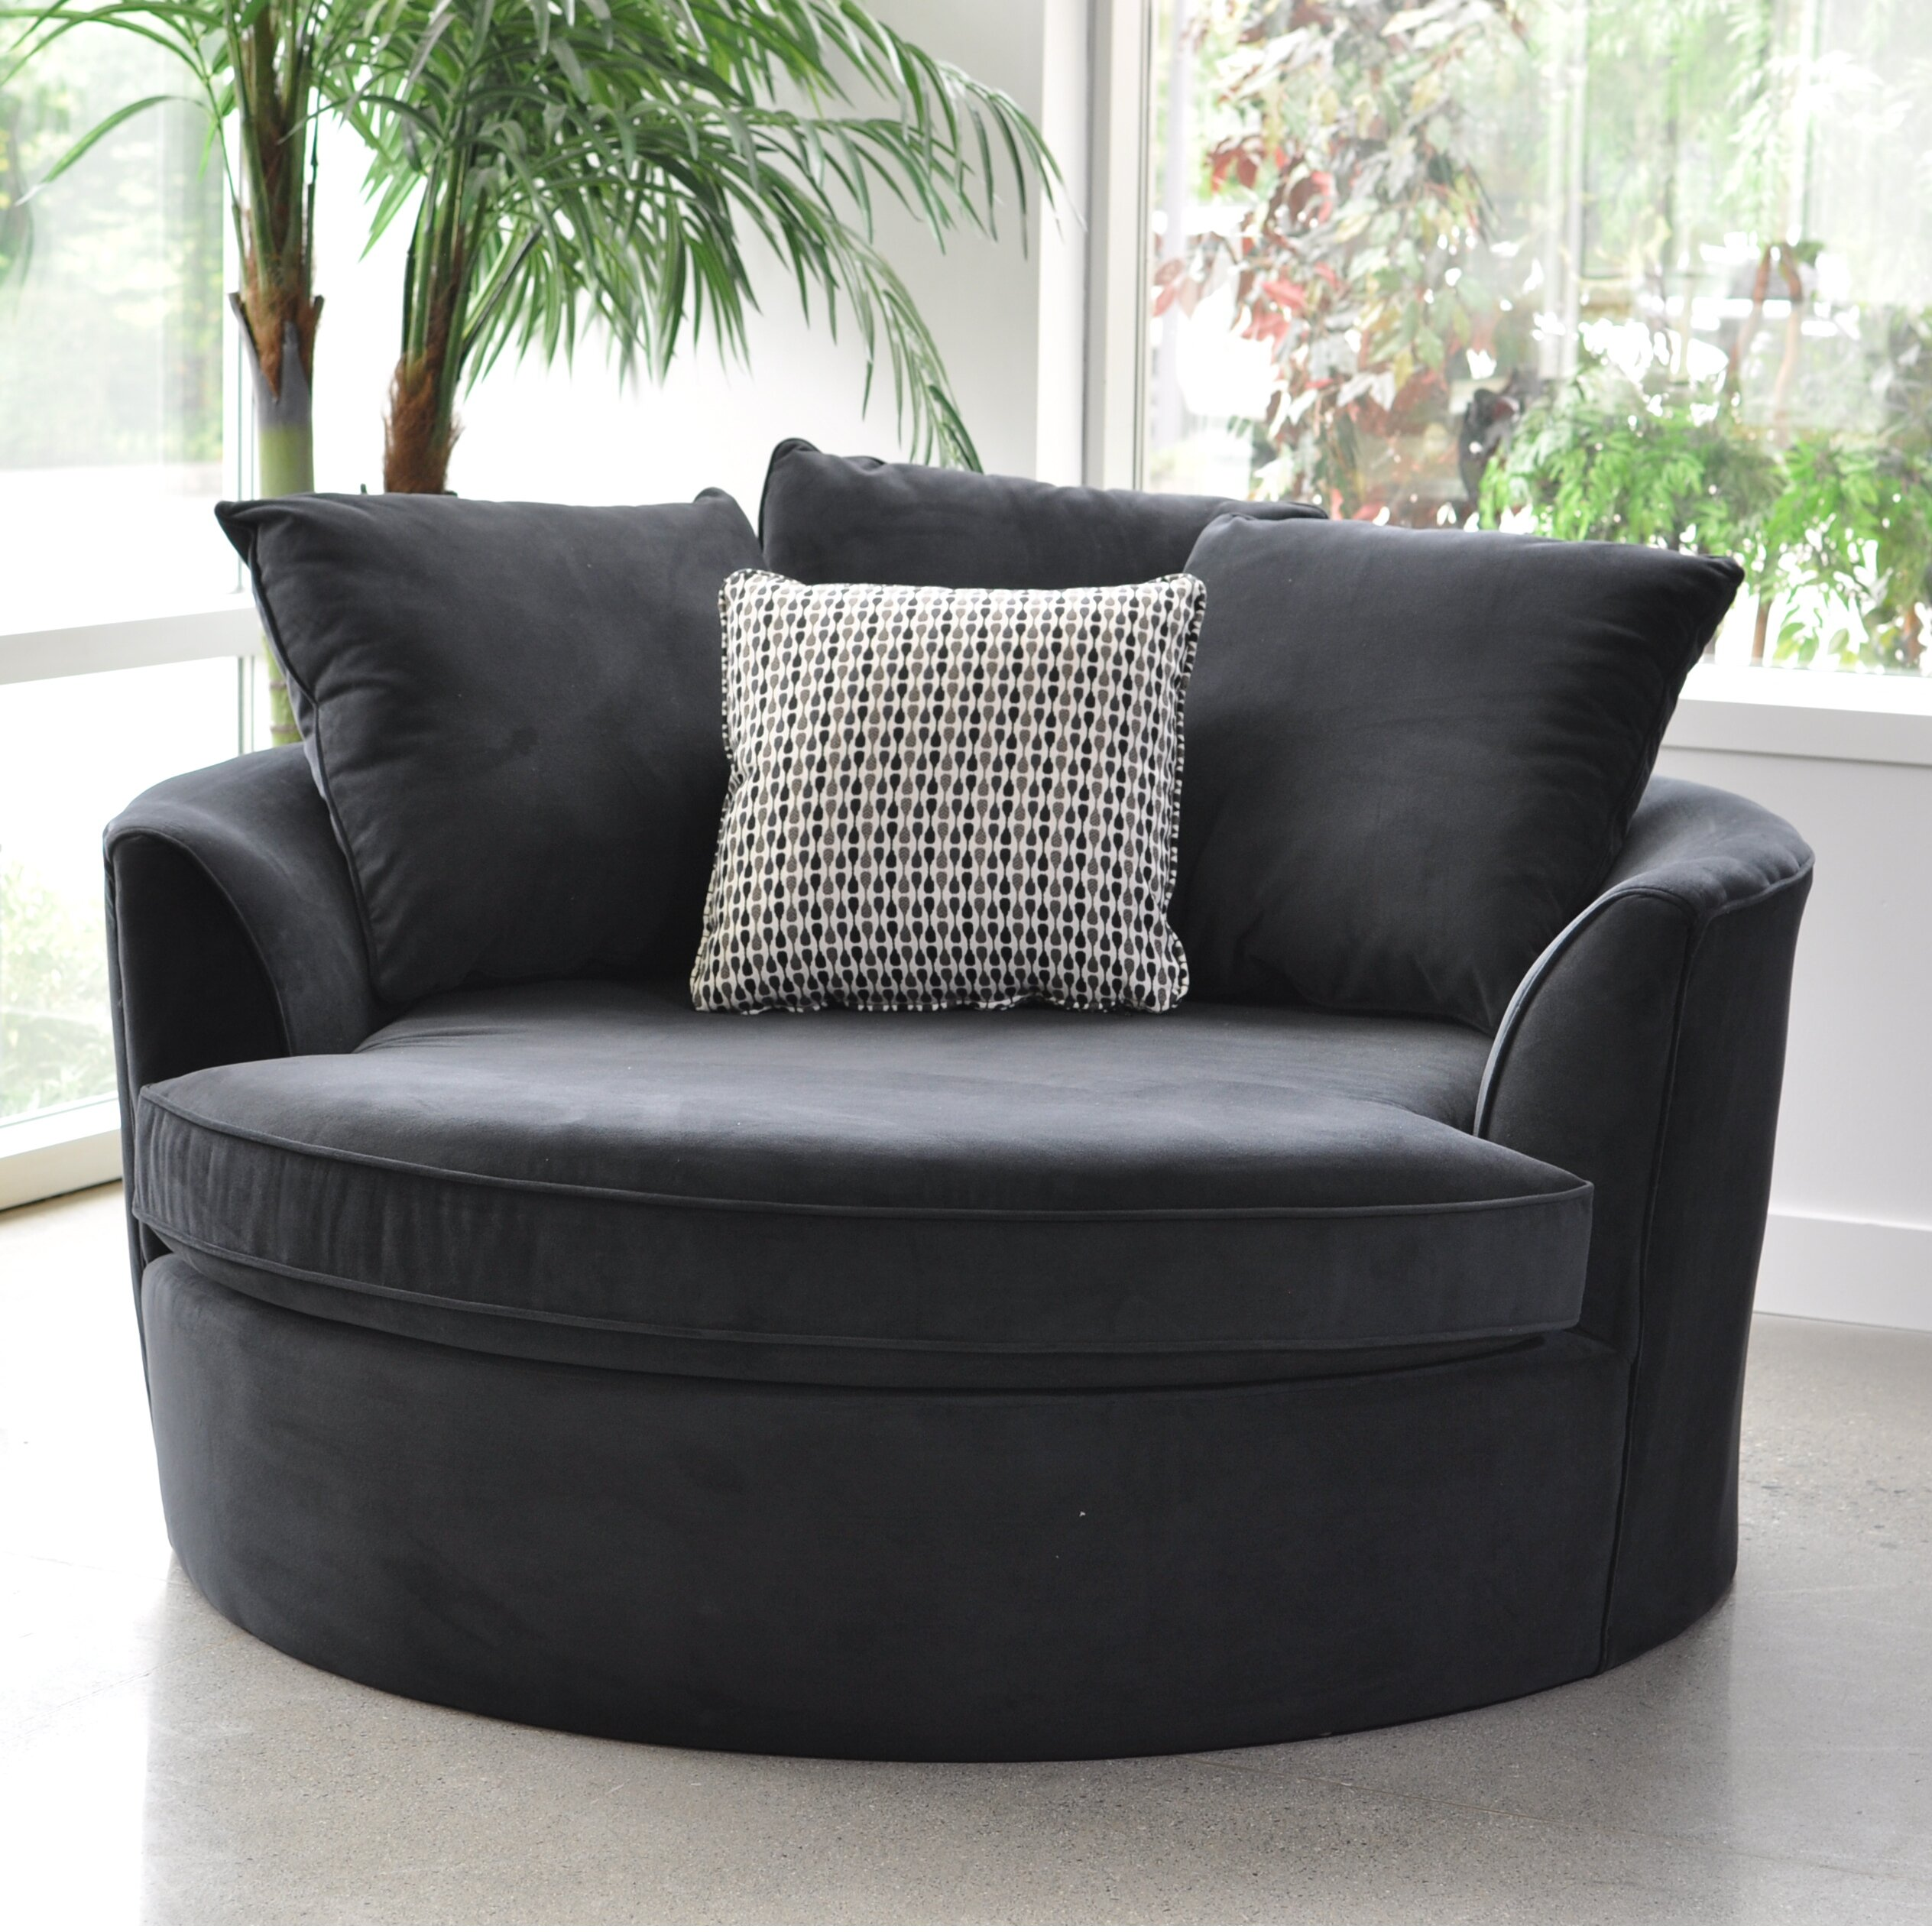 Sofas to Go Cuddler Barrel Chair u0026 Reviews : Wayfair